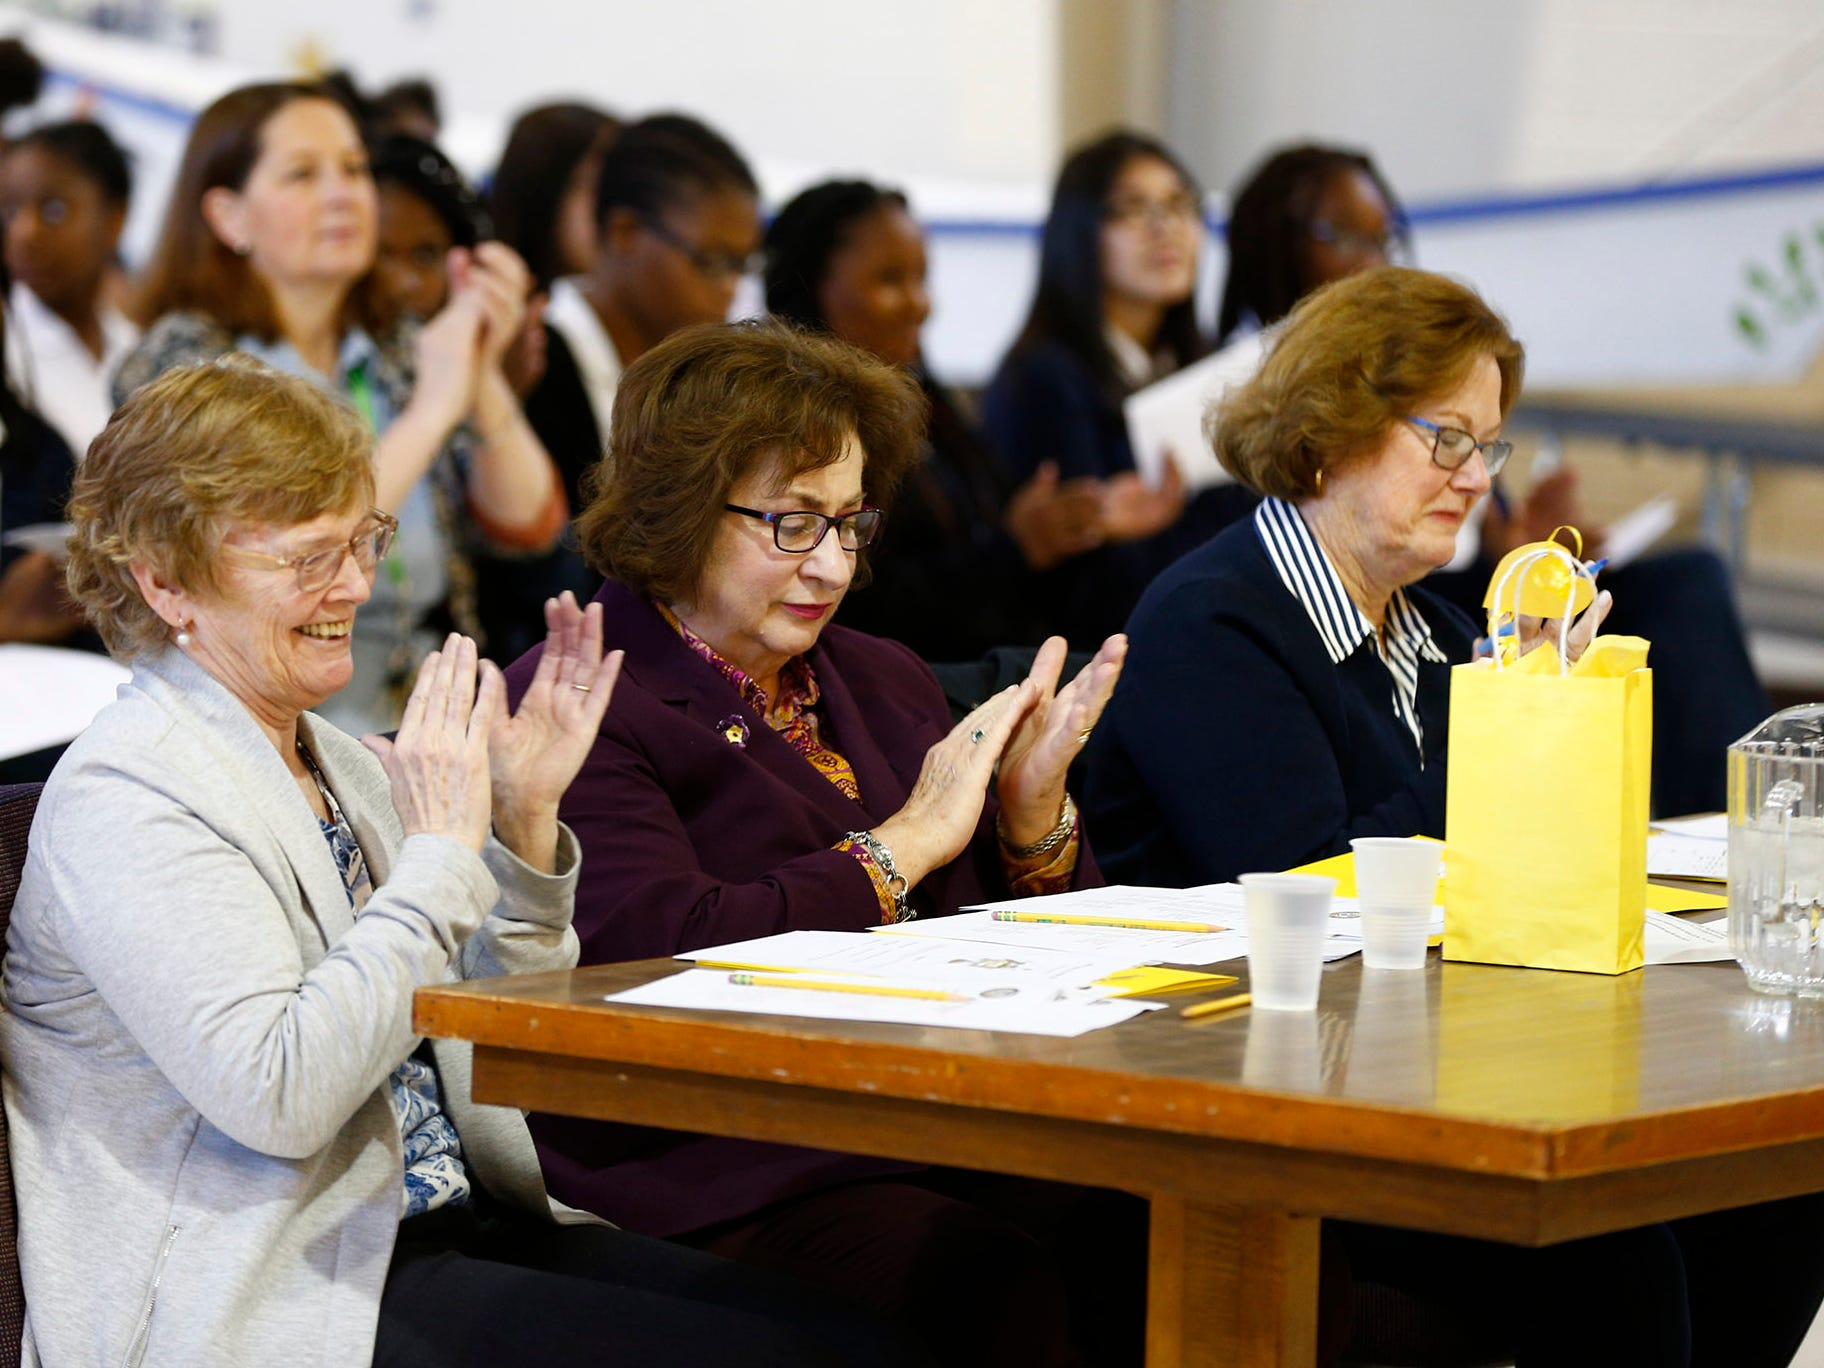 Judges applaud during the 8th Annual Miller Speaking Contest at the Sisters Academy in Asbury Park school Thursday, March 14, 2019.